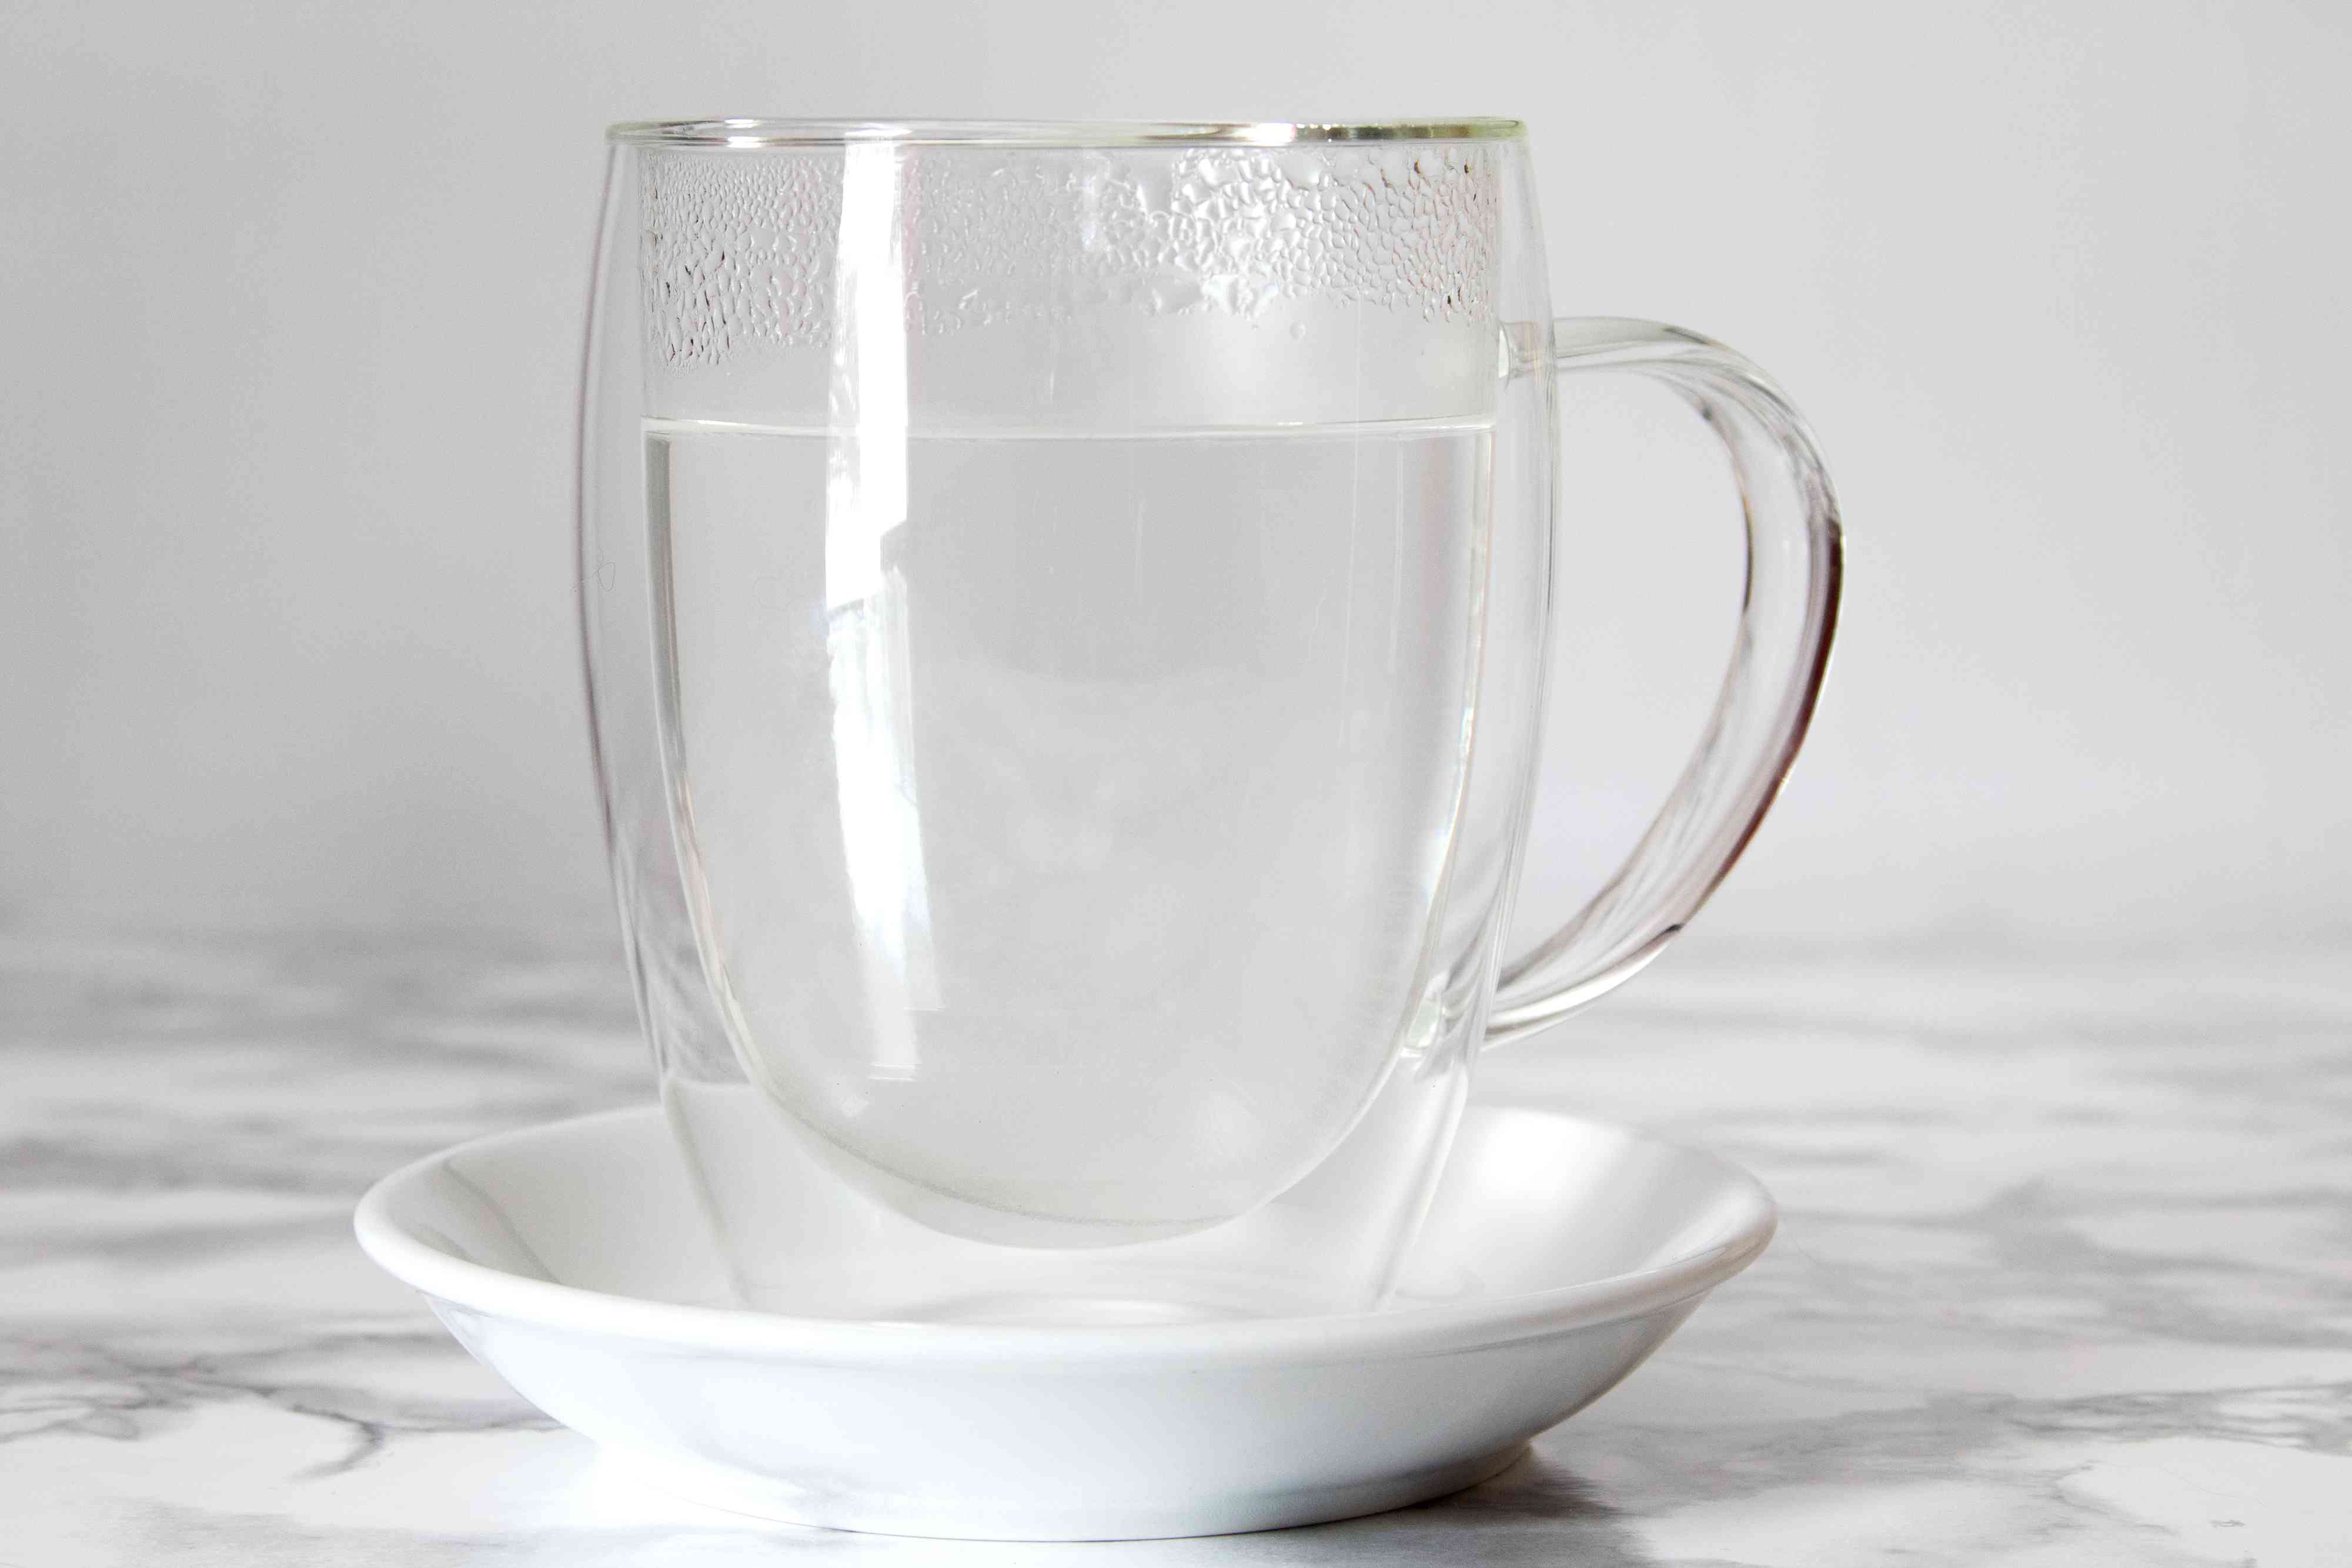 Heat Coffee Mug With Hot Water for Pour-Over Coffee